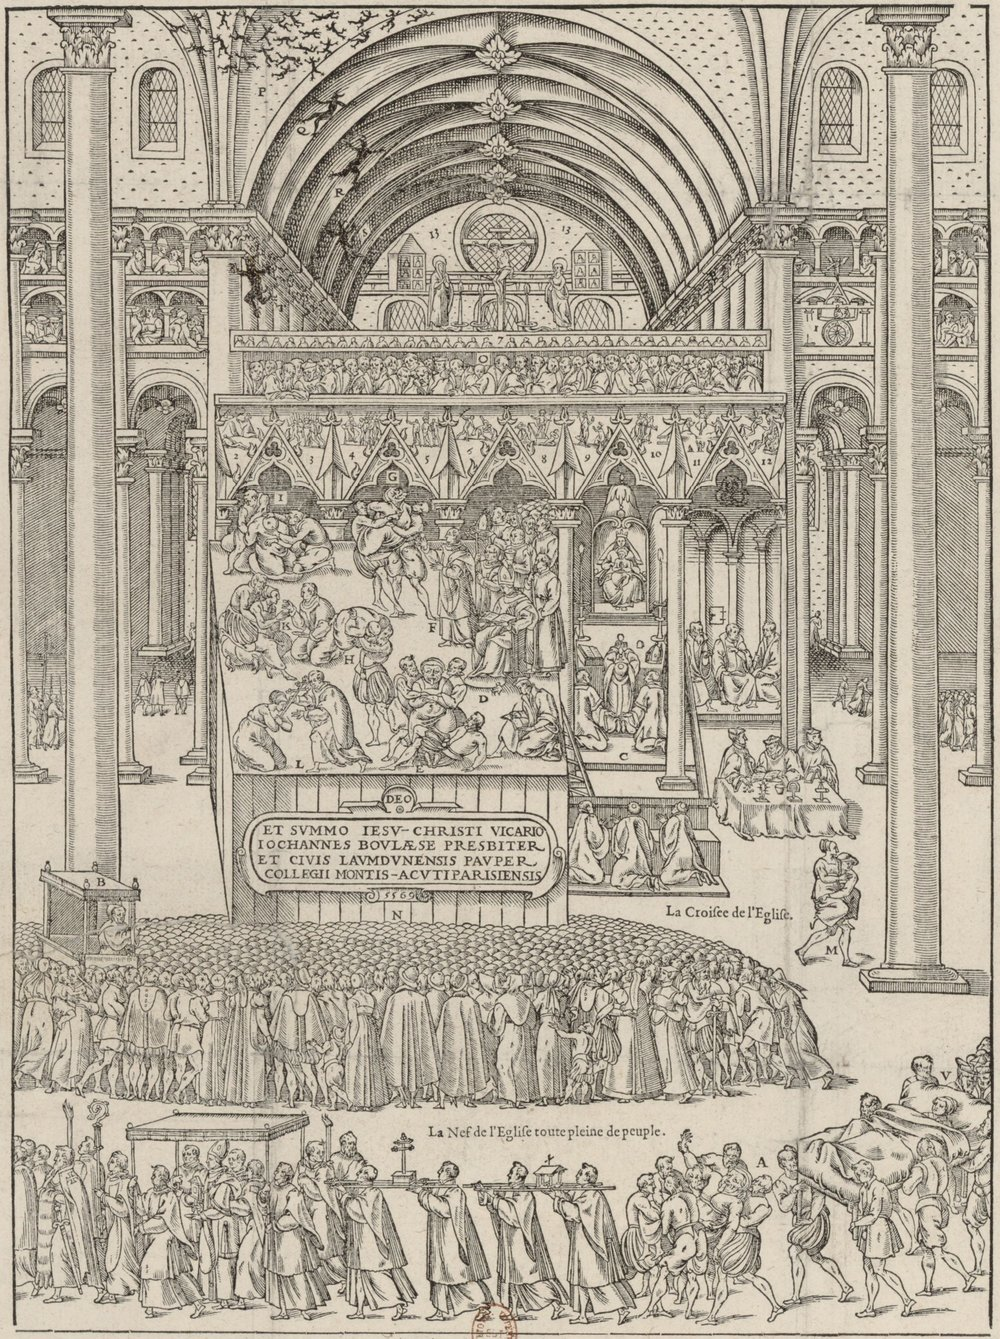 La Carte et Image représentant au vif la triomphante victoire du précieux corps de Dieu sur l'esprit maling Beelzebub, par grand miracle obtenue à Laon mil cinq cens soixante-six. Image courtesy of Bibliothèque nationale de France.